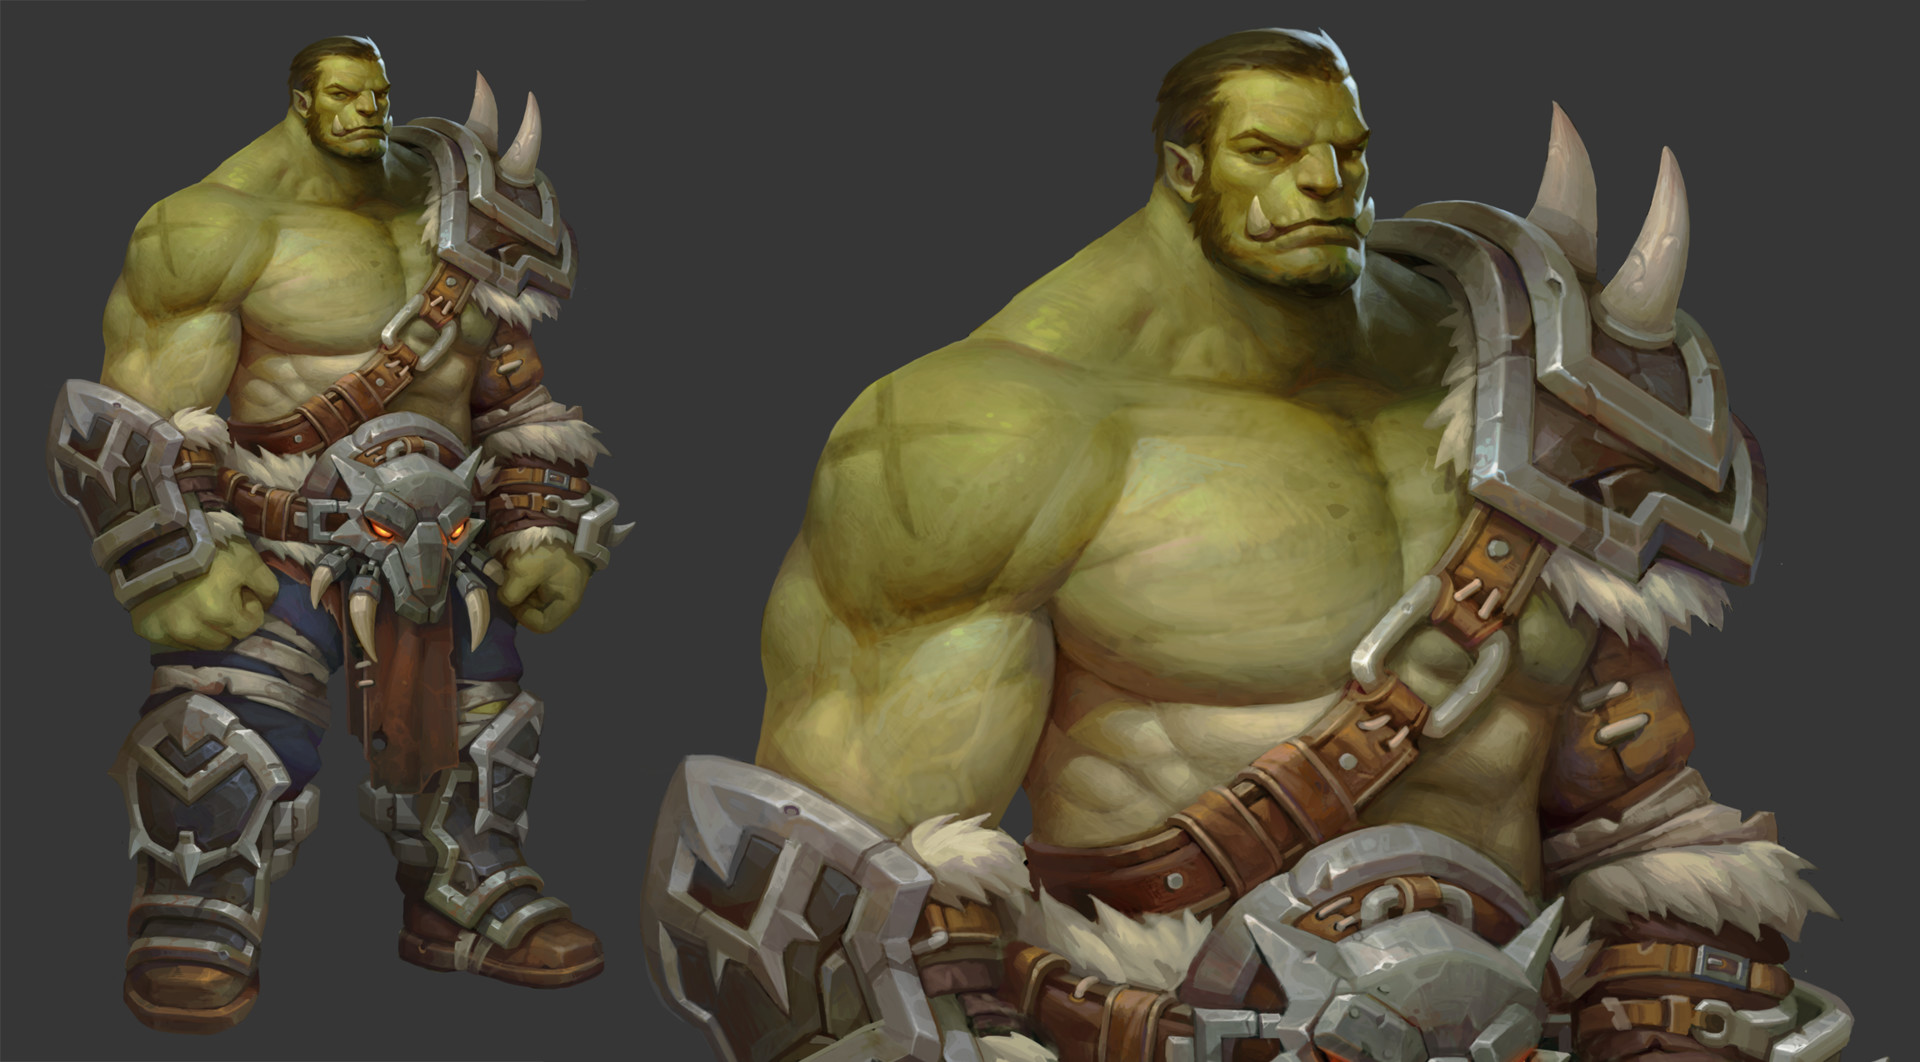 HQ Orc Wallpapers | File 329.42Kb